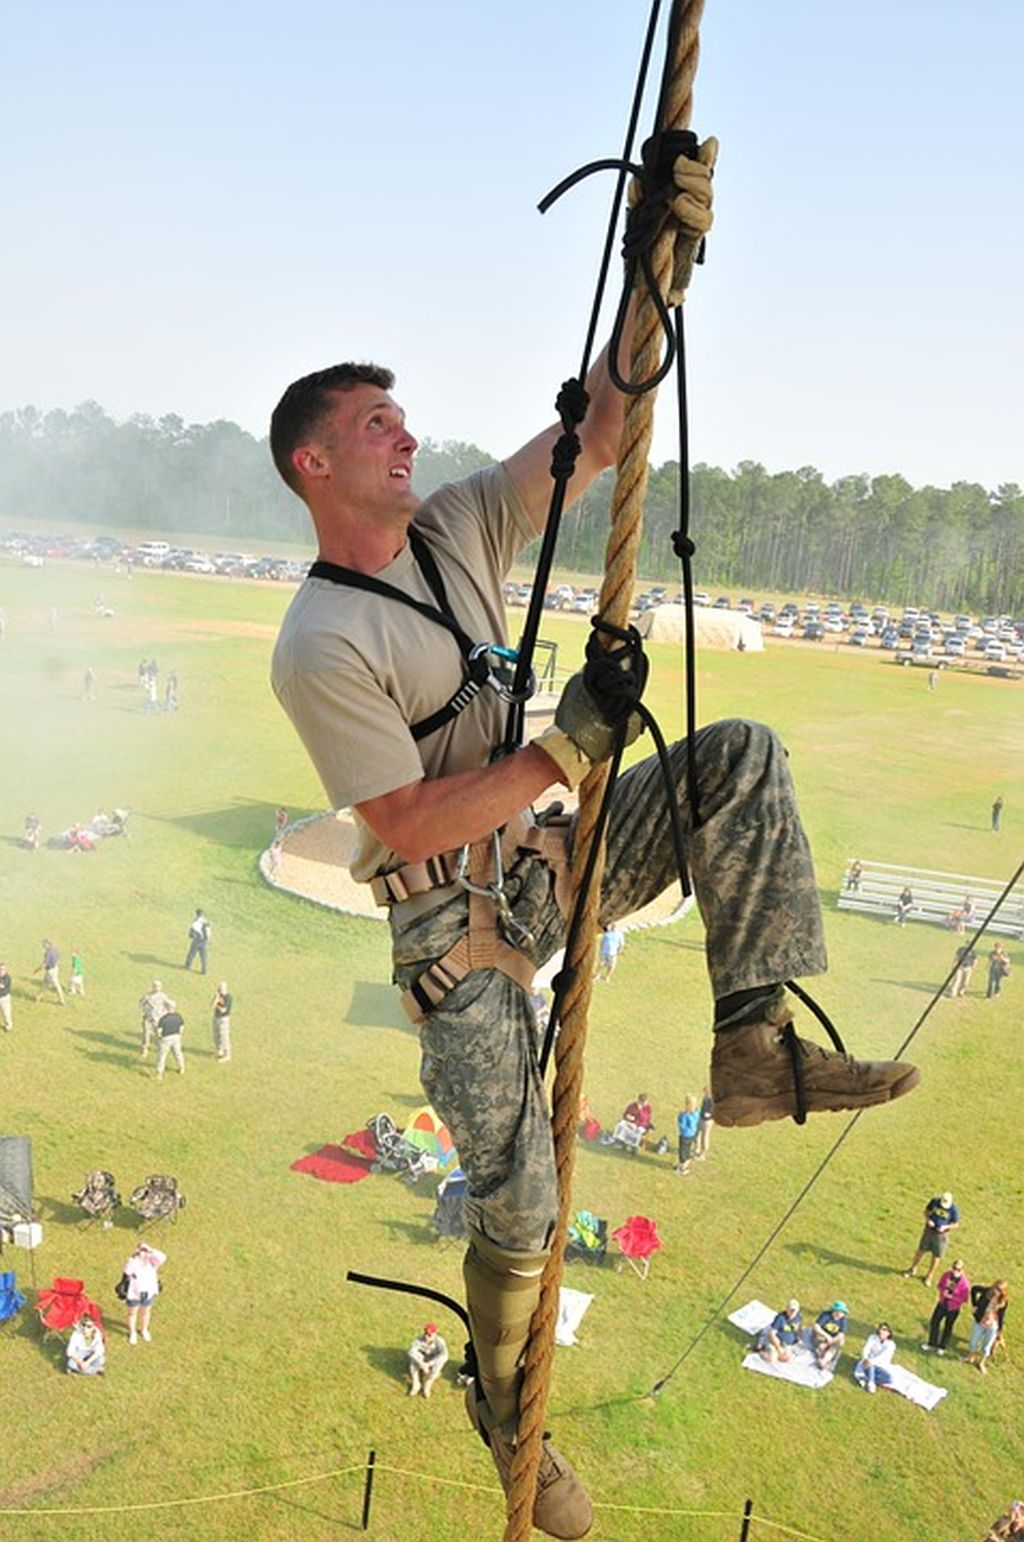 military training rope